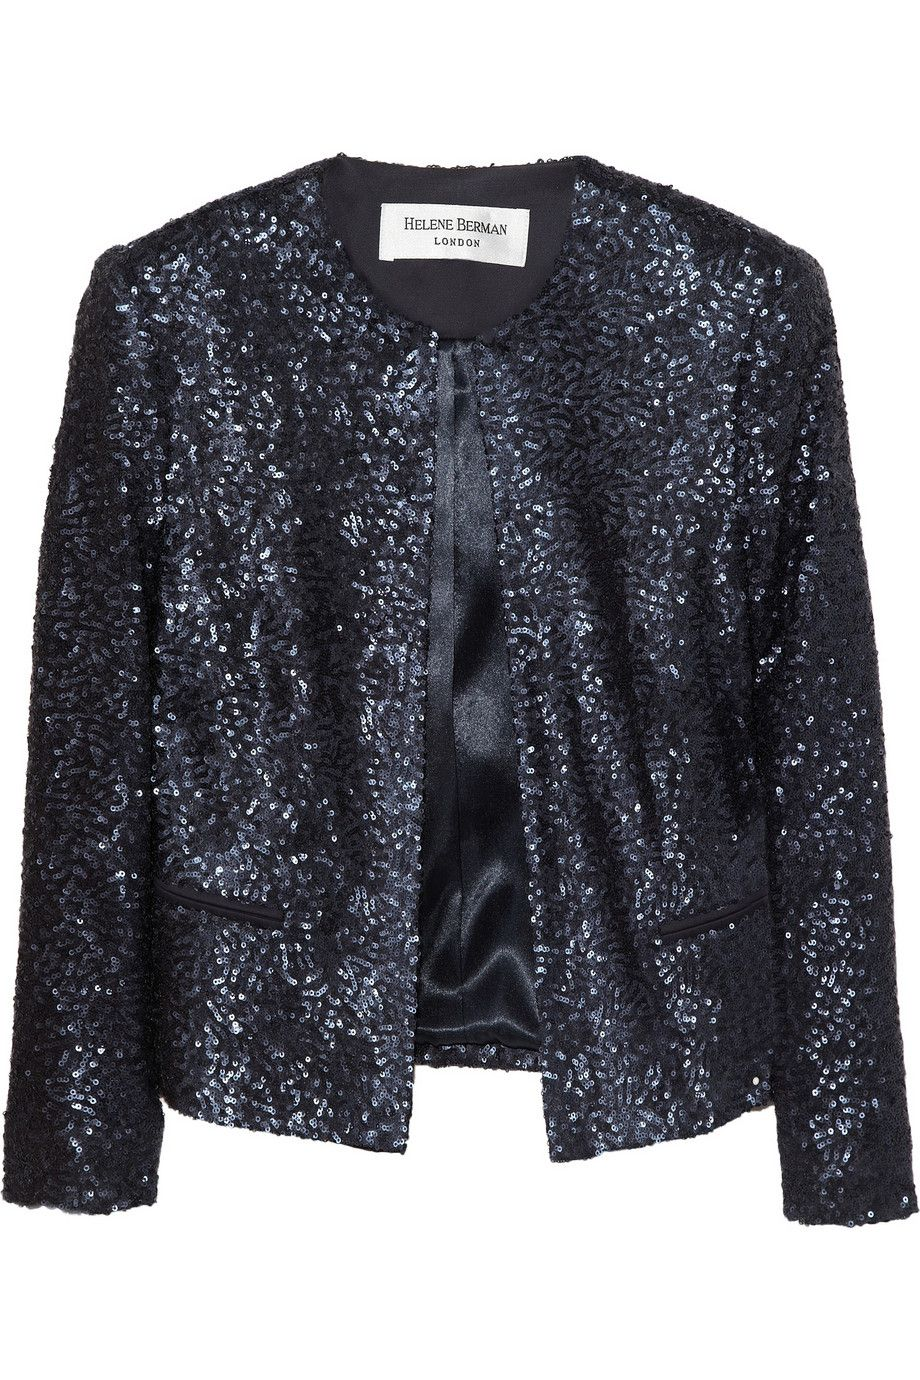 3f967f3573f Helene Berman Cropped sequined jacket - 30% Off Now at THE OUTNET ...